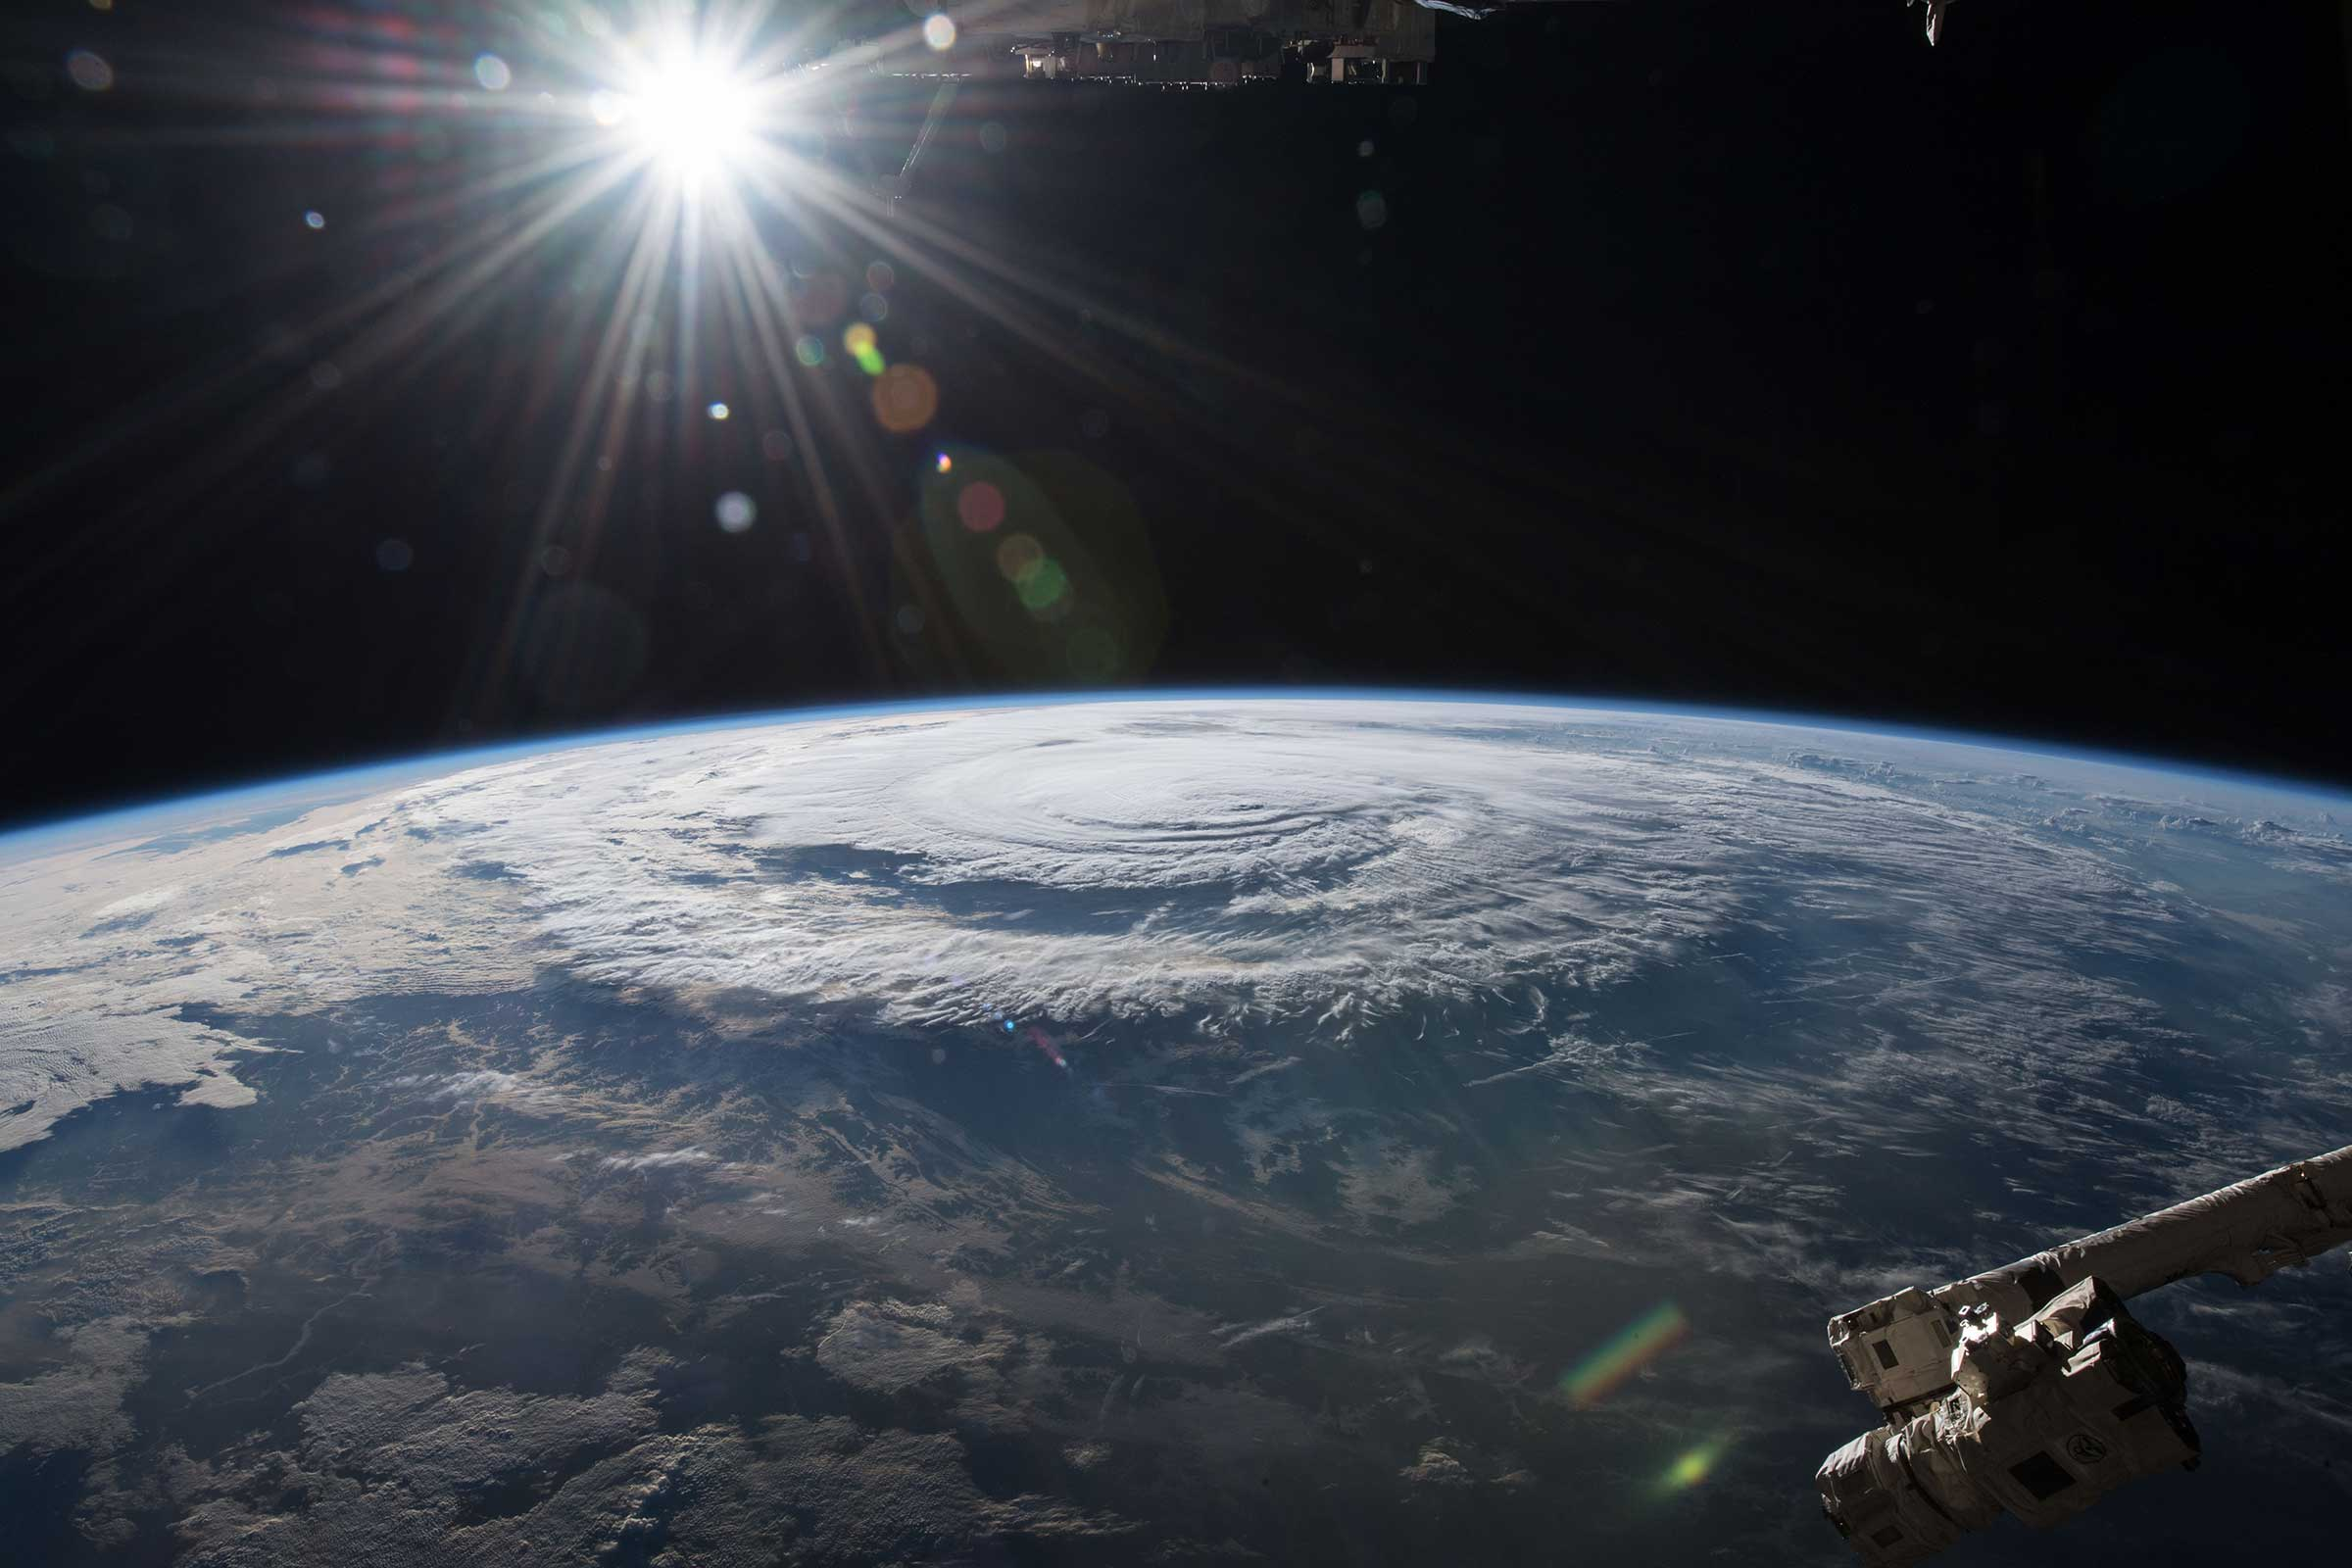 Hurricane Florence is pictured from the International Space Station in this NASA image